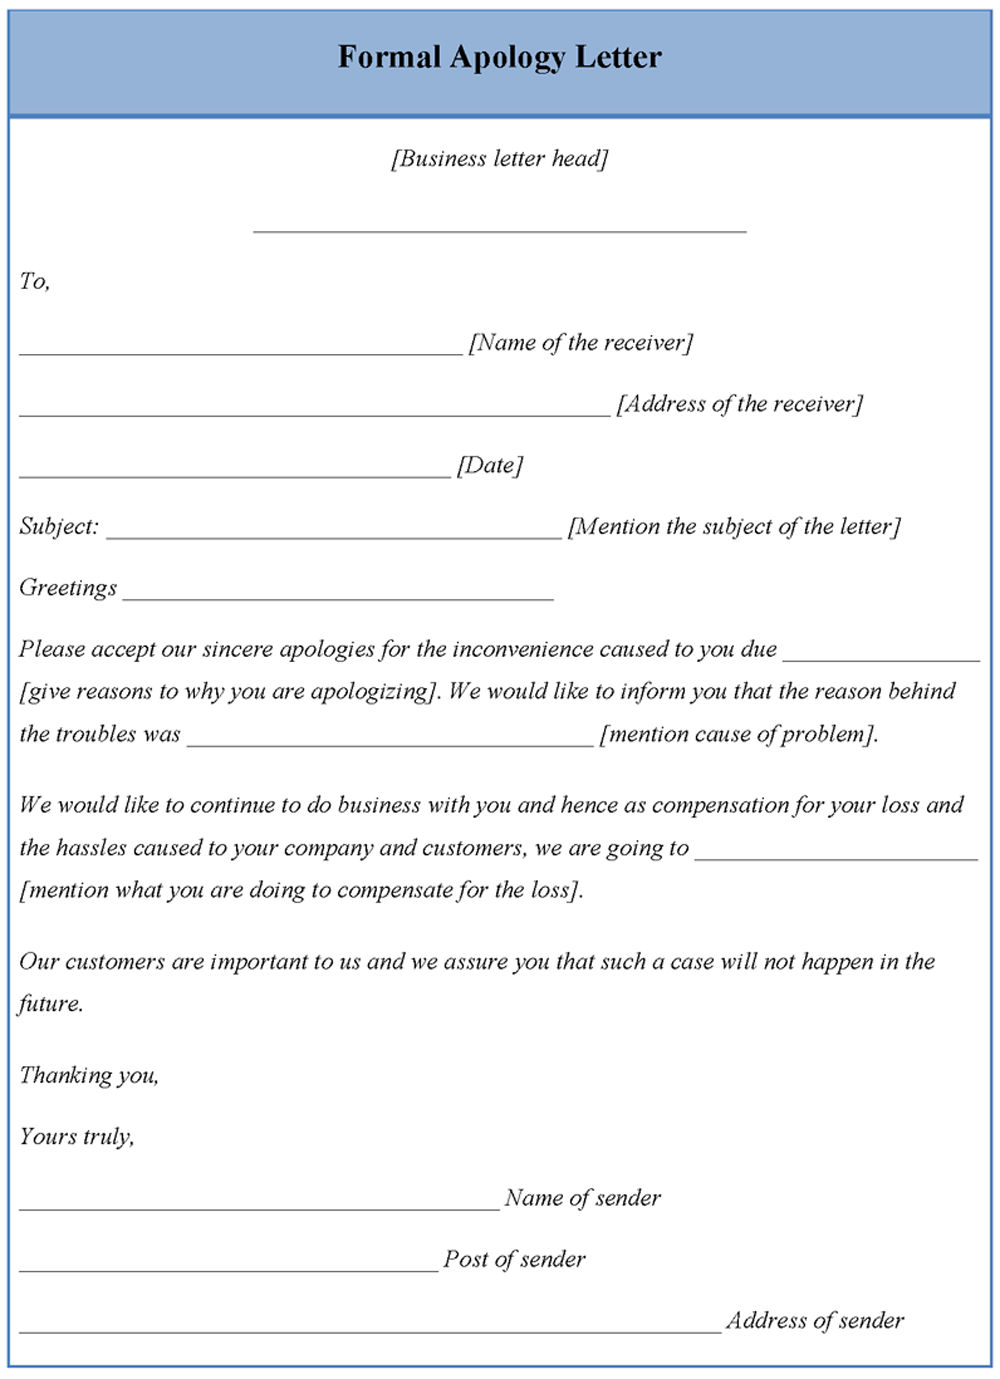 Apology letter format free download thecheapjerseys Image collections